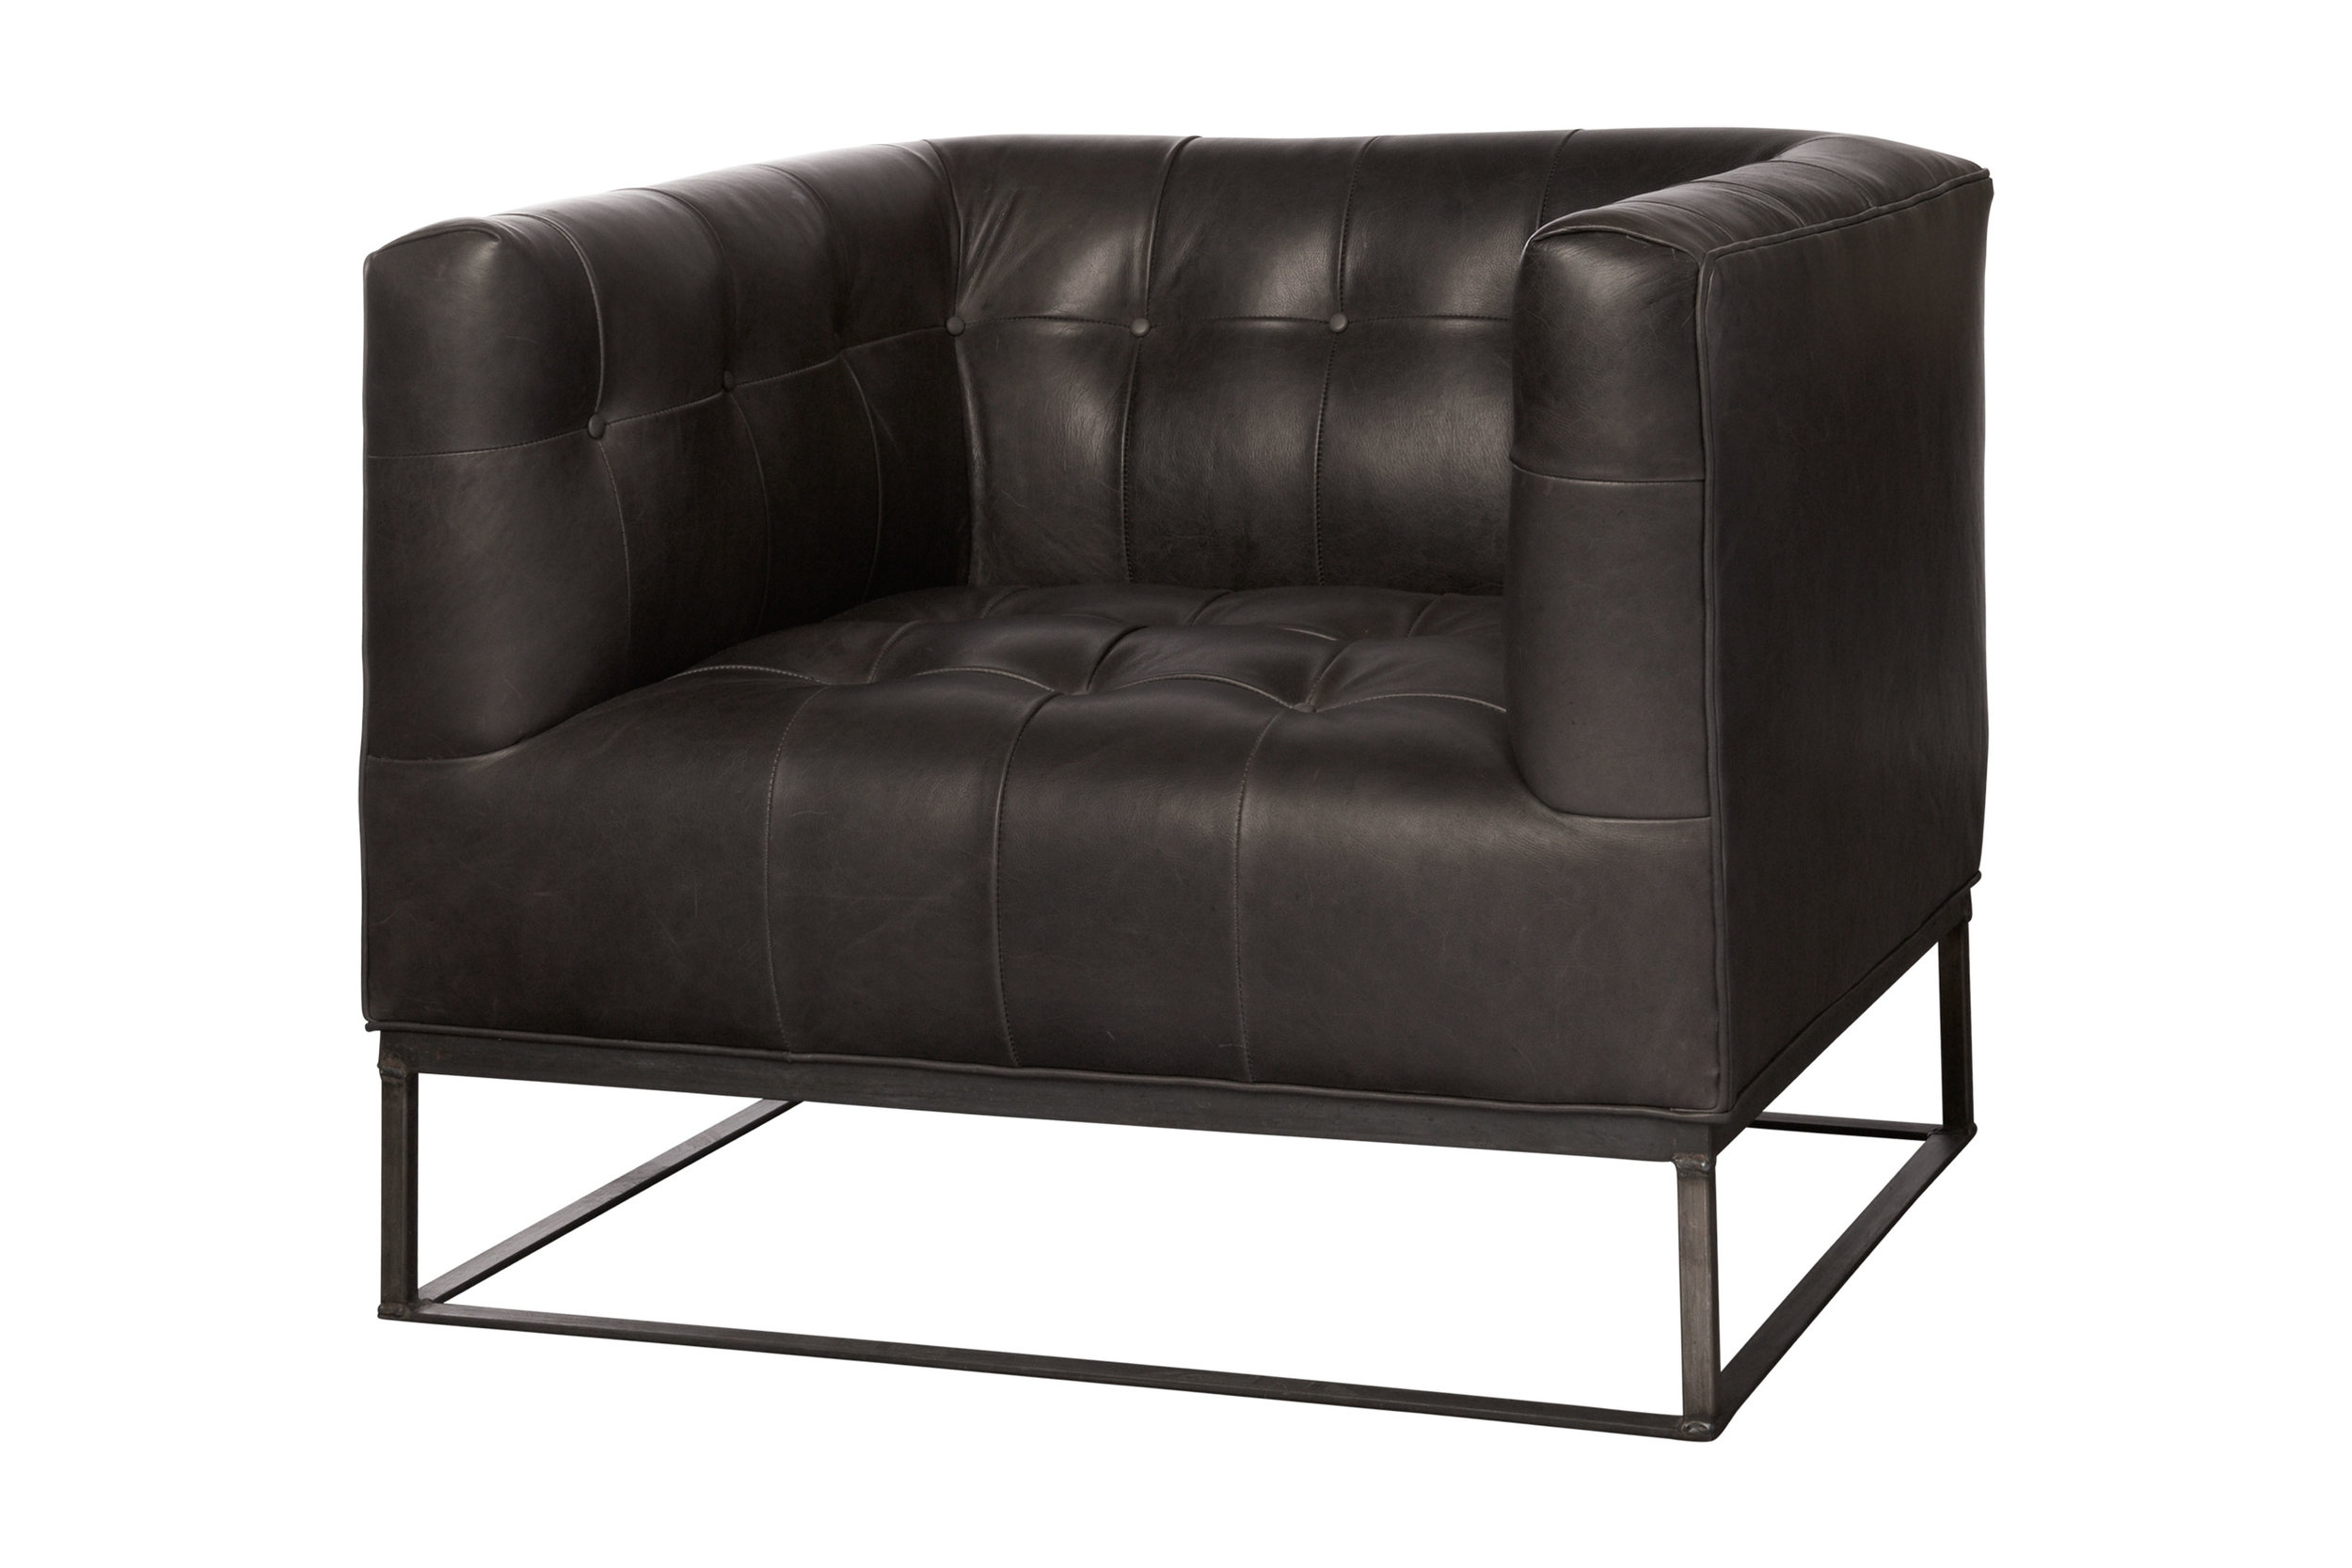 Colin_Chair_Charcoal_Leather_Side.jpg